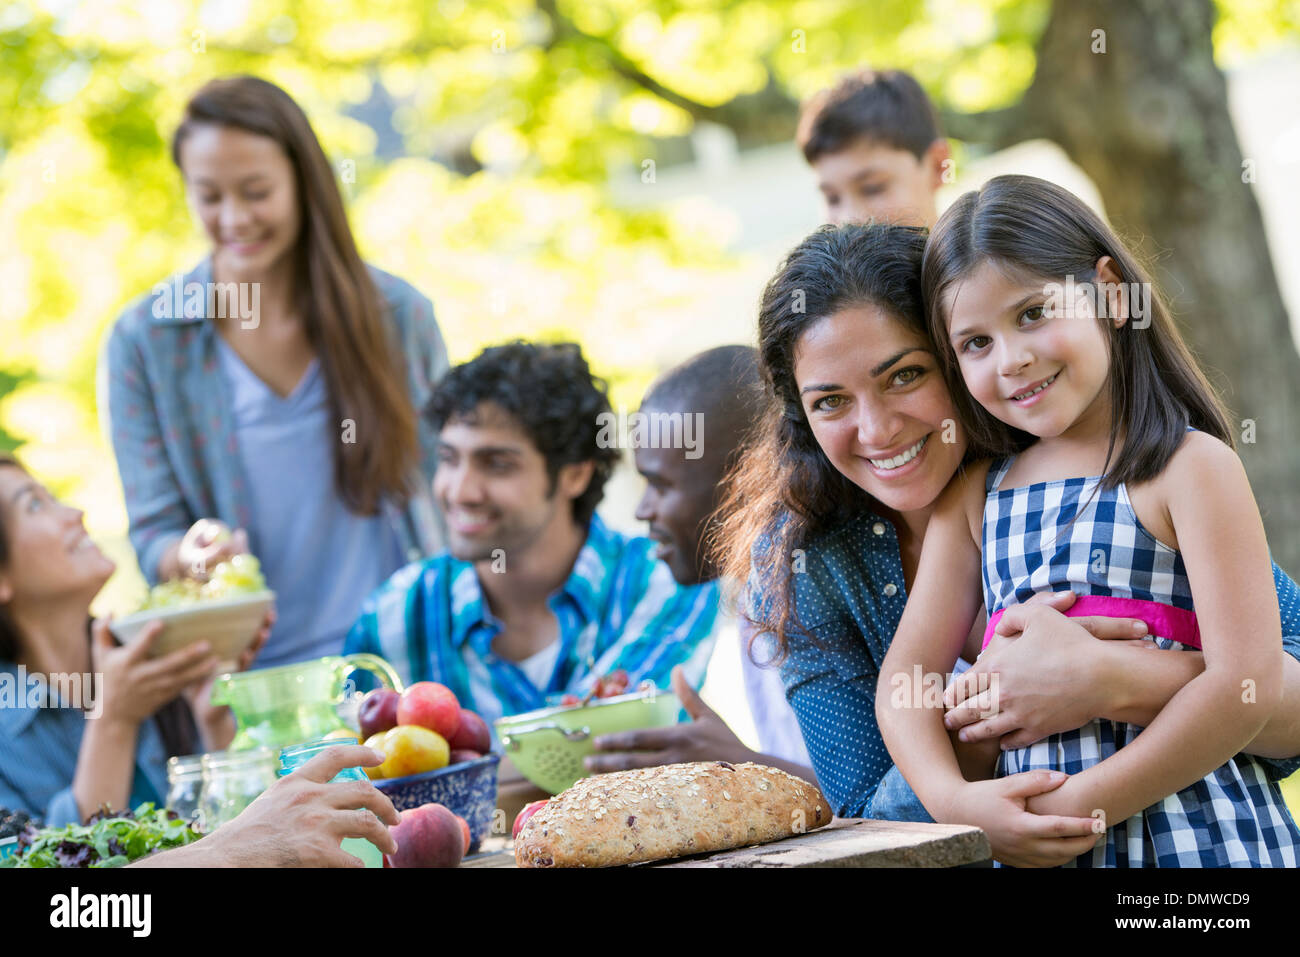 A summer party outdoors. Adults and children smiling and looking at  camera. - Stock Image